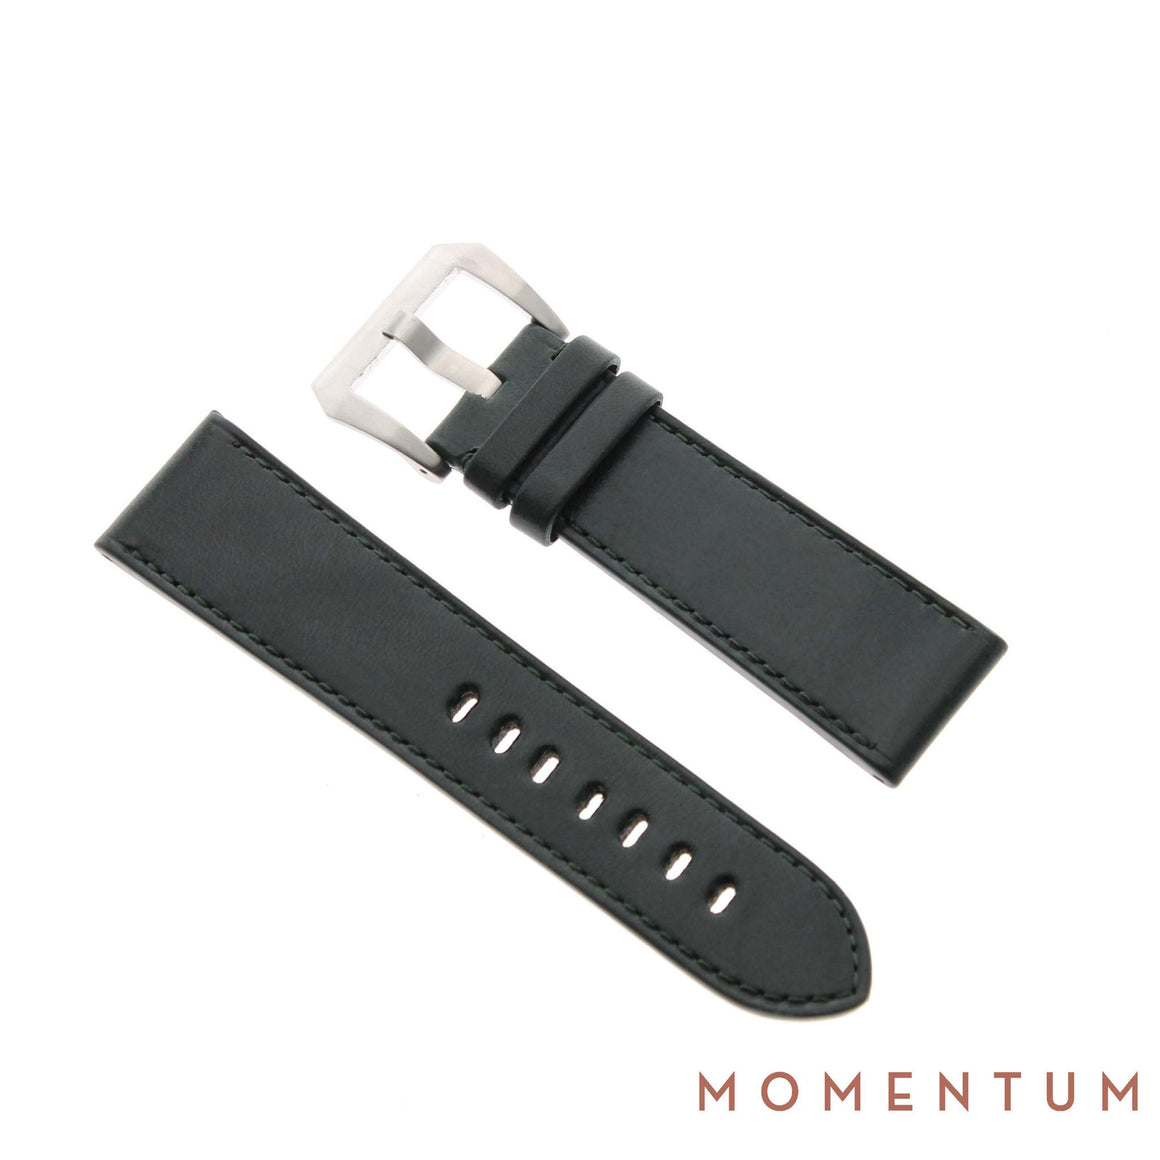 Vintage Strap - Dark Green - Horse Leather - Momentum Dubai